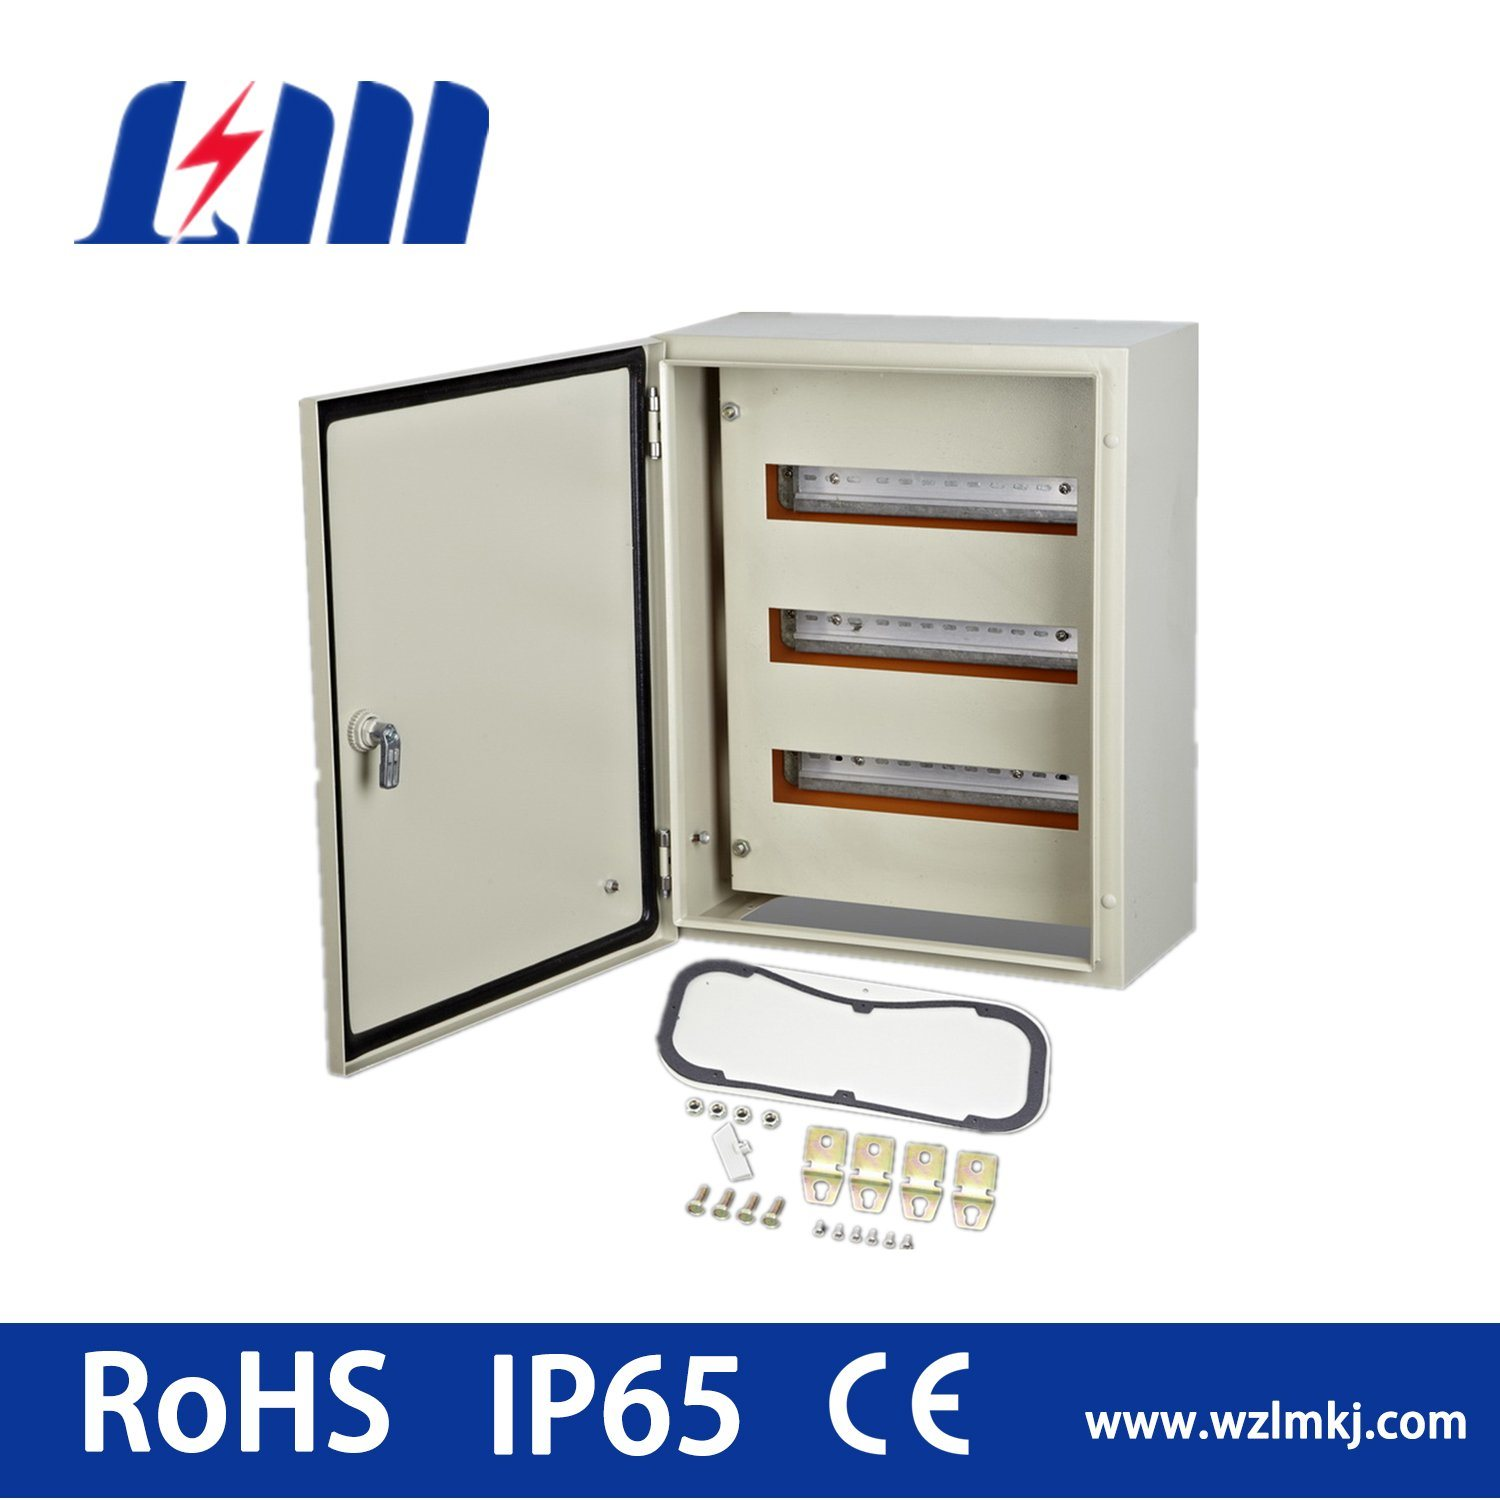 Module Kit for Wall Mount Enclosure/Distribution Box with Rail